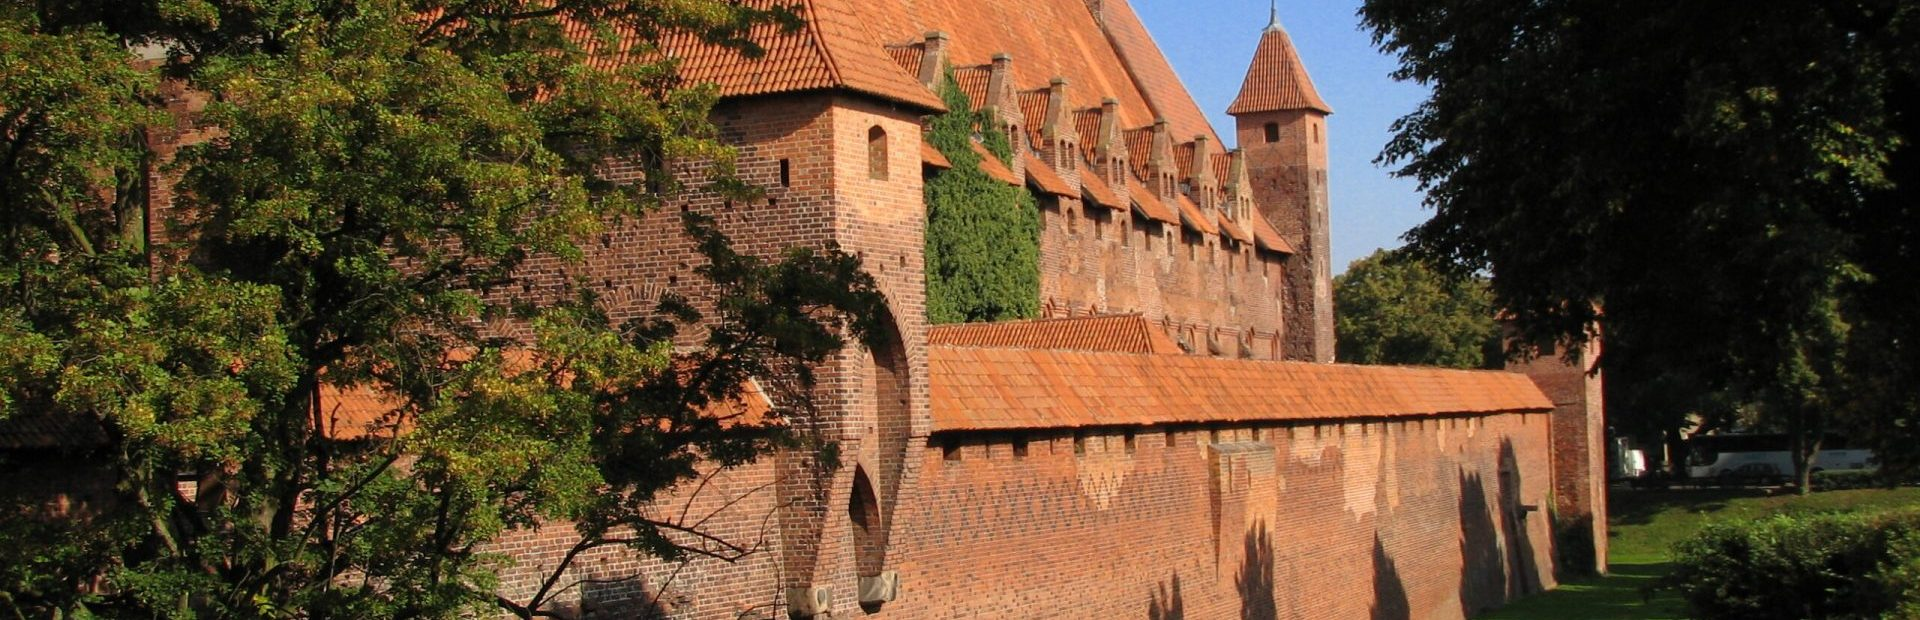 The Castle of the Teutonic Knights in Malbork